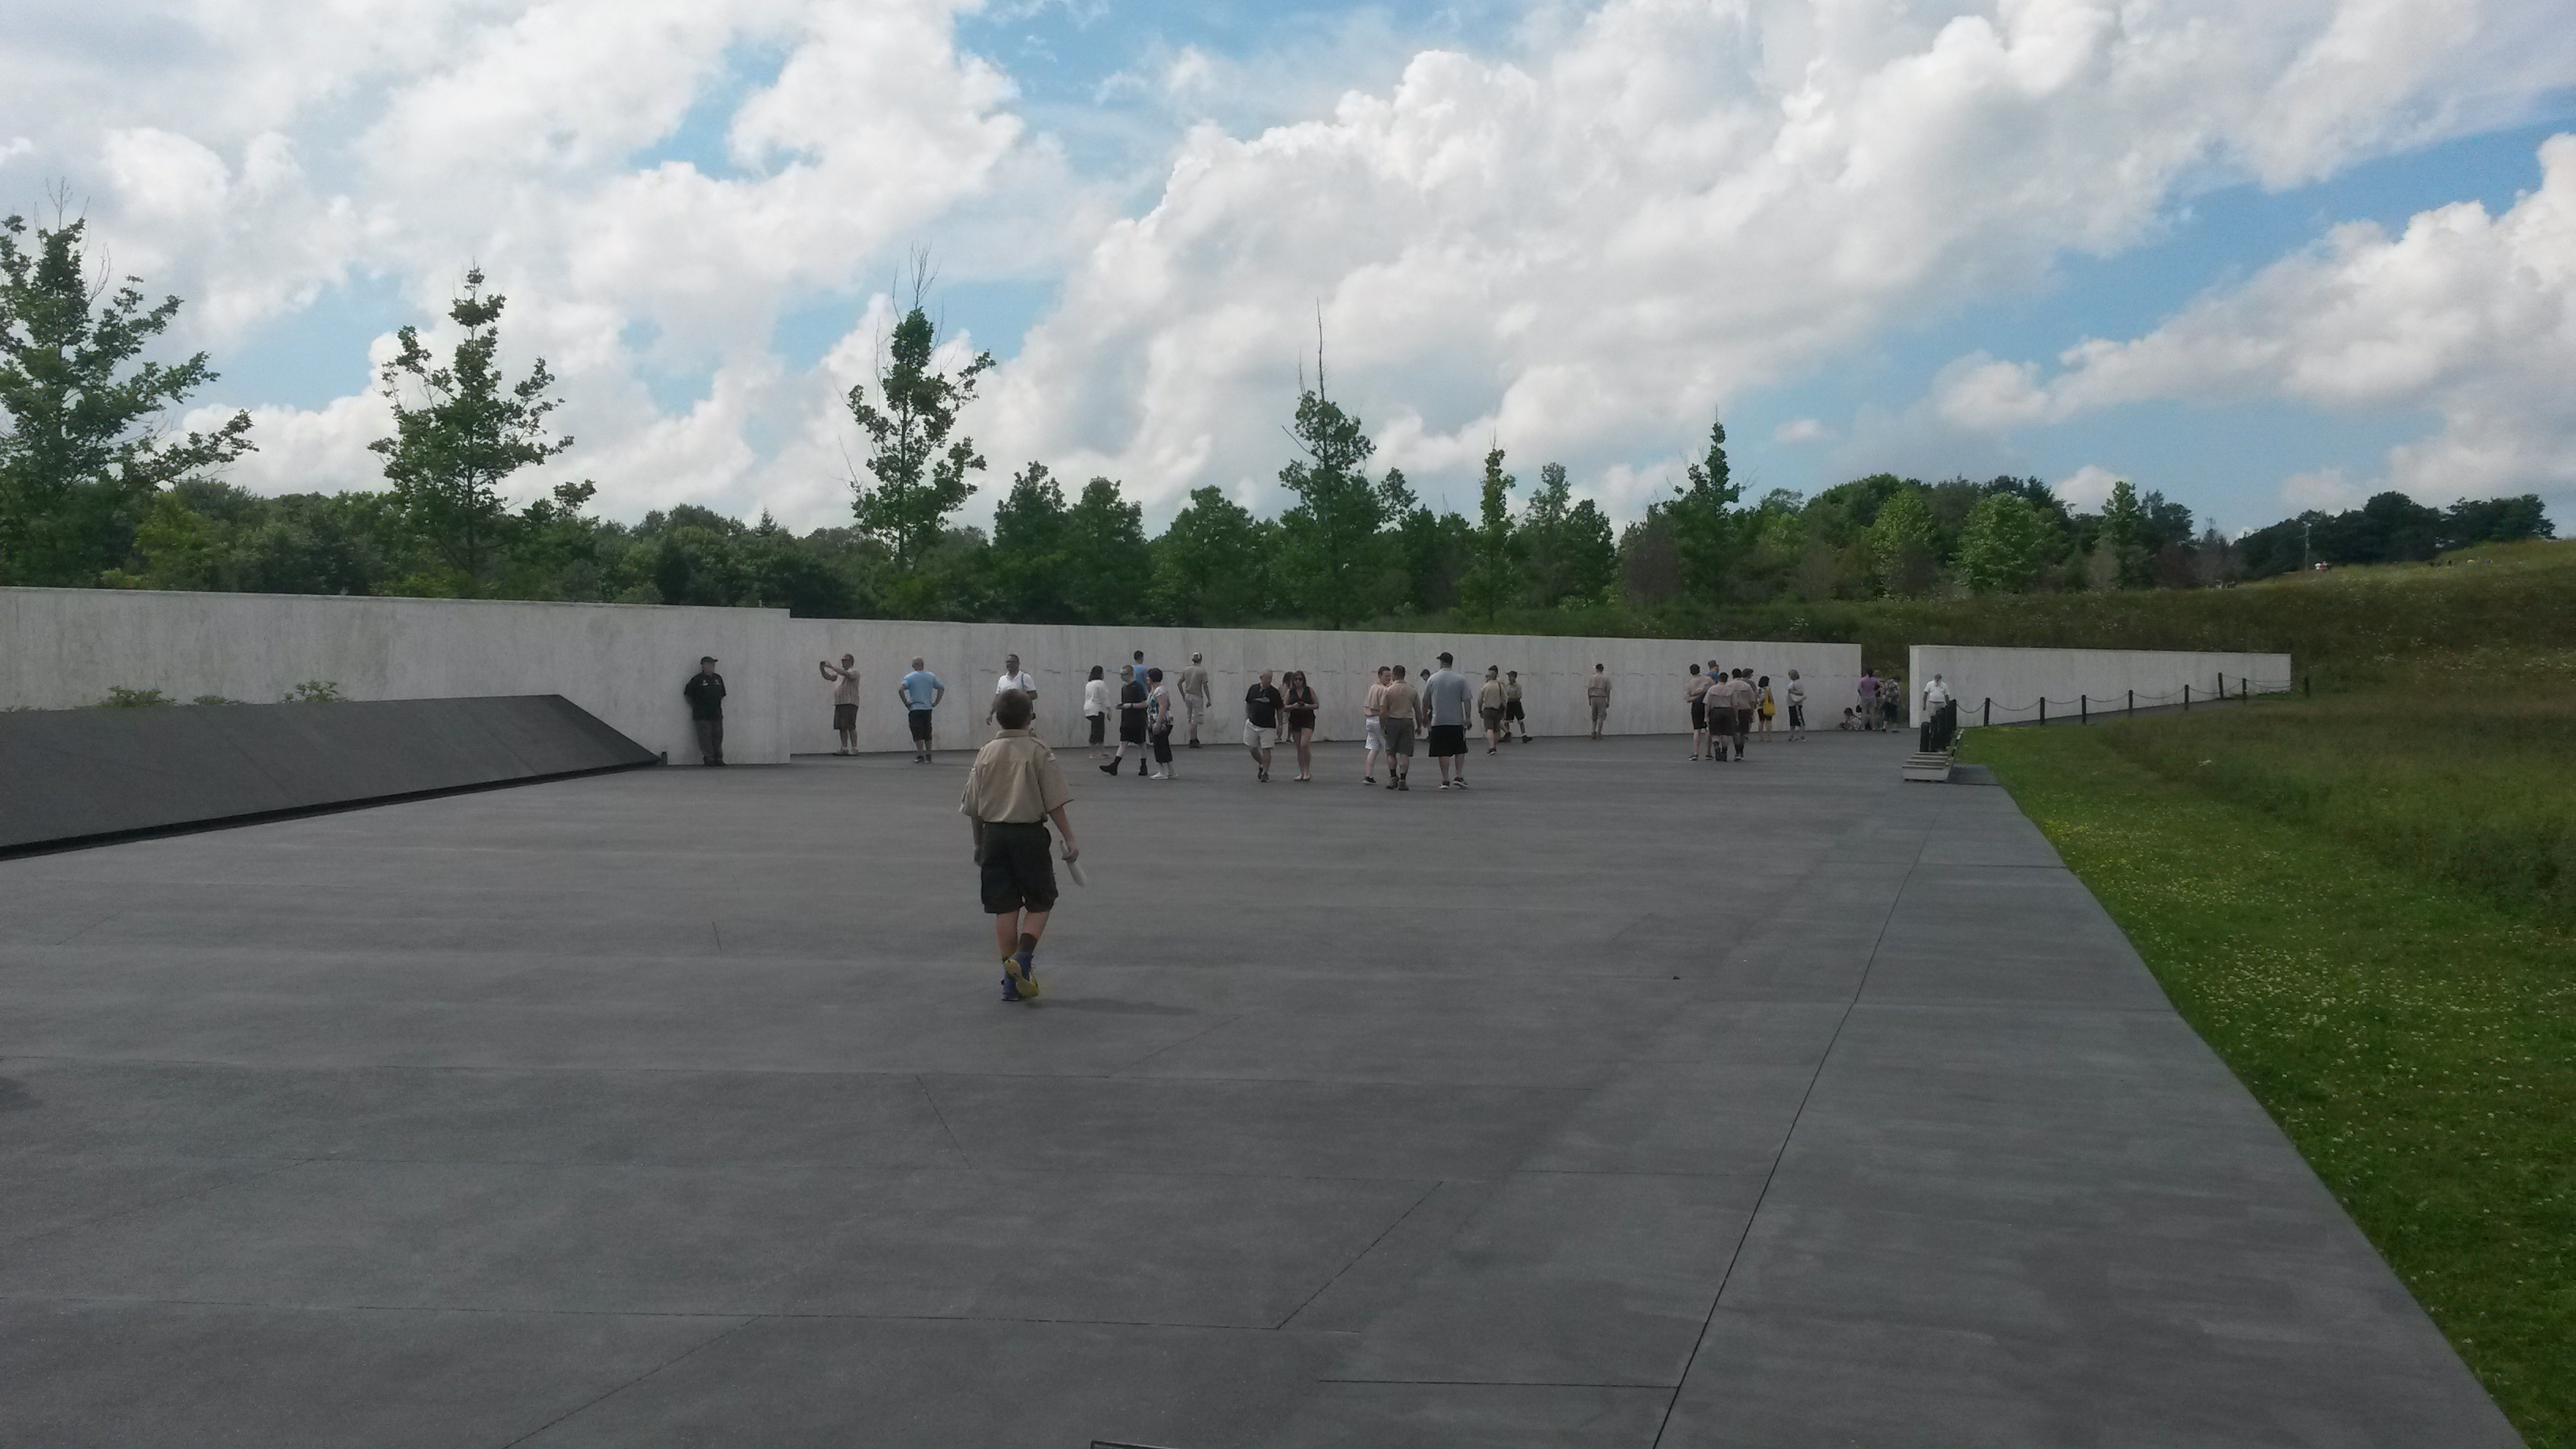 stoystown muslim Flight 93 national memorial: very sad place to visit - see 1,367 traveler reviews, 1,142 candid photos, and great deals for stoystown, pa, at tripadvisor.